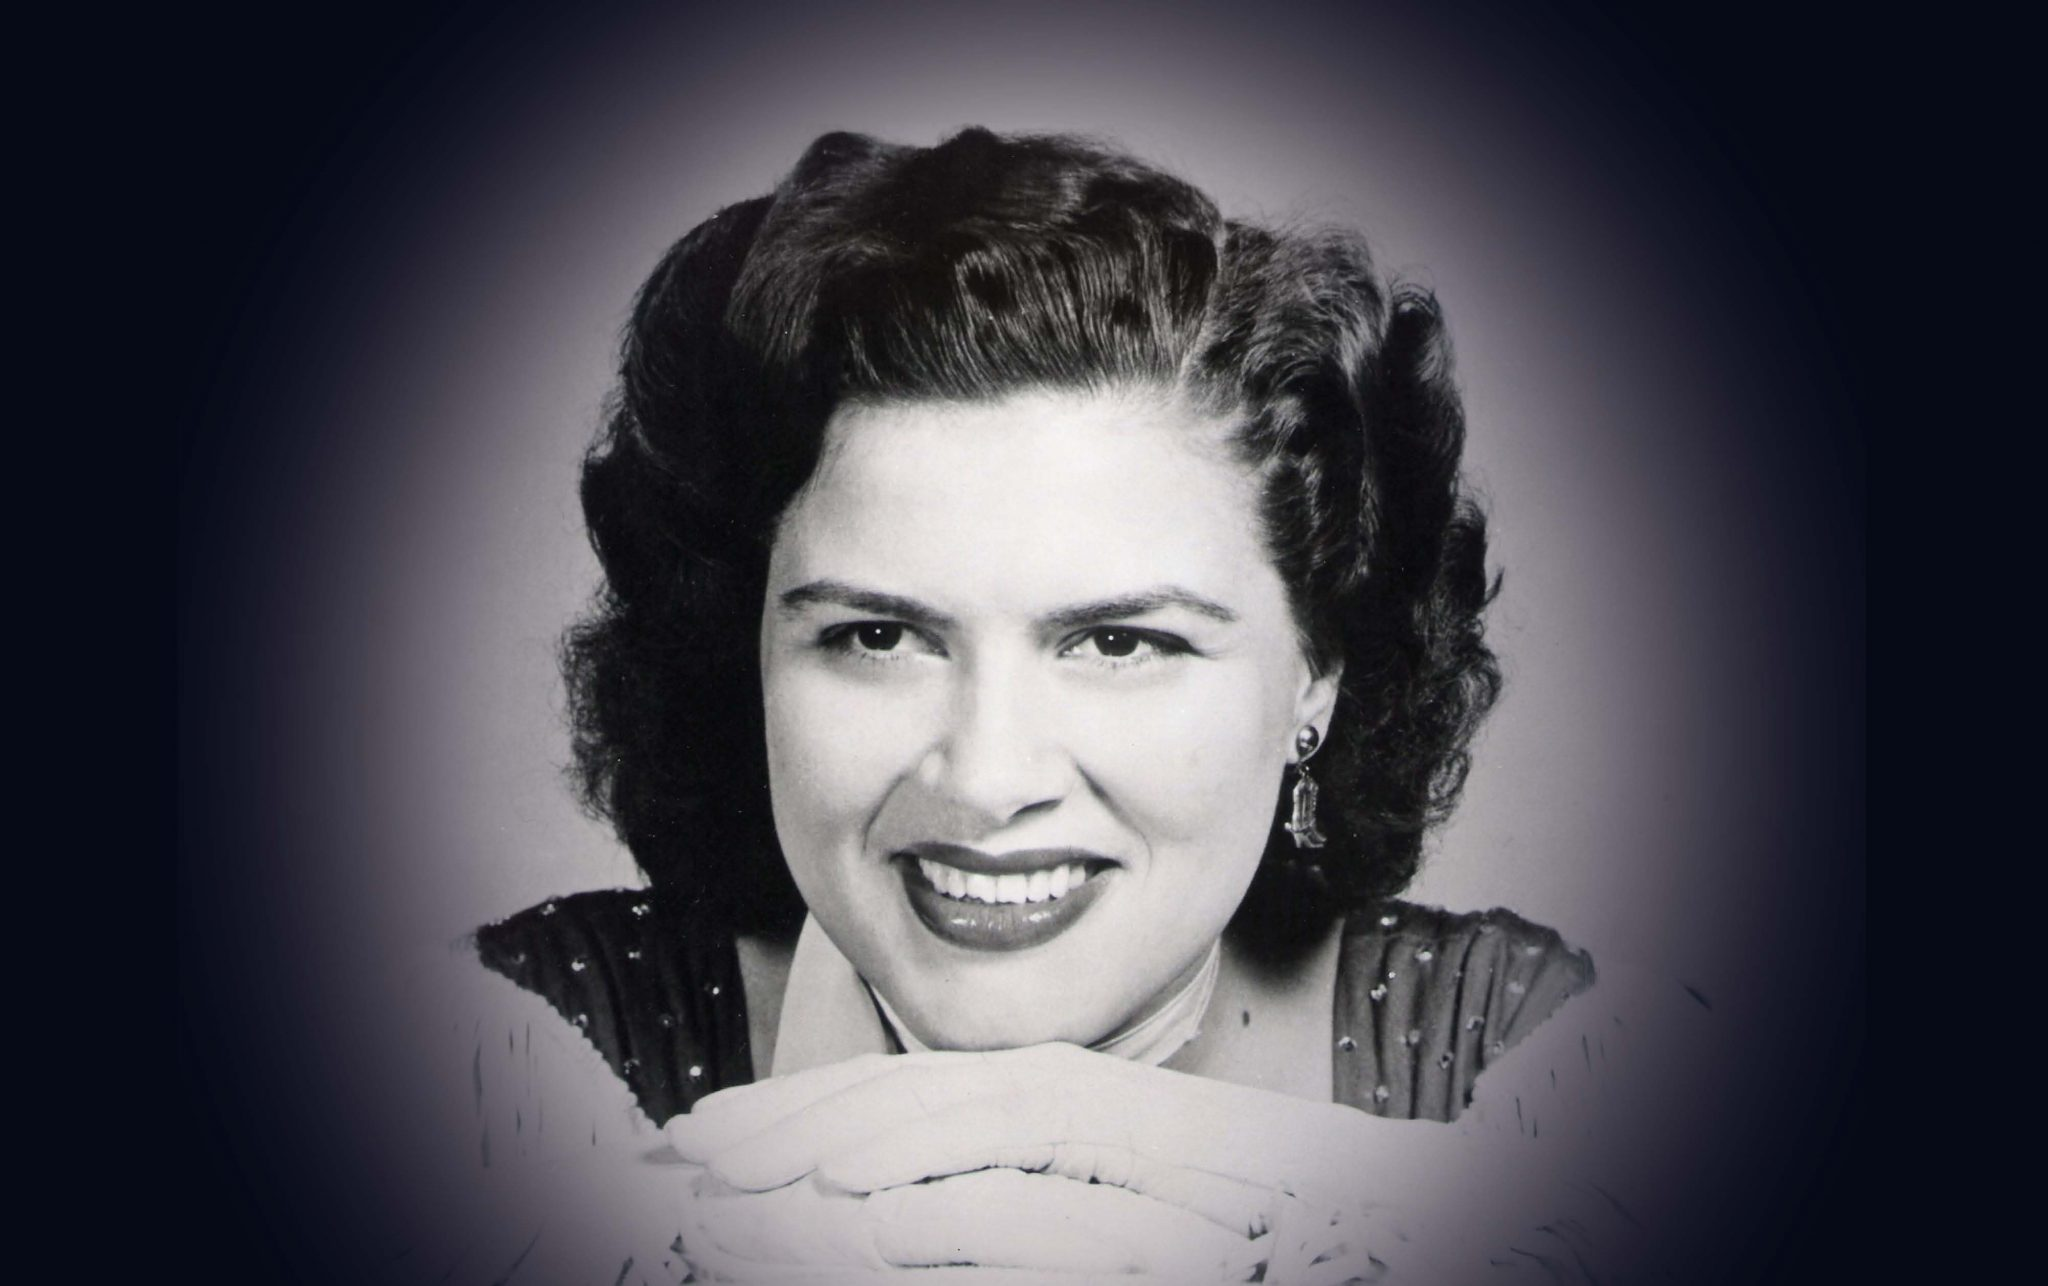 PAST EVENT: A Closer Walk With Patsy Cline – The Grand Marais Playhouse (MN) July 18 – August 11, 2019